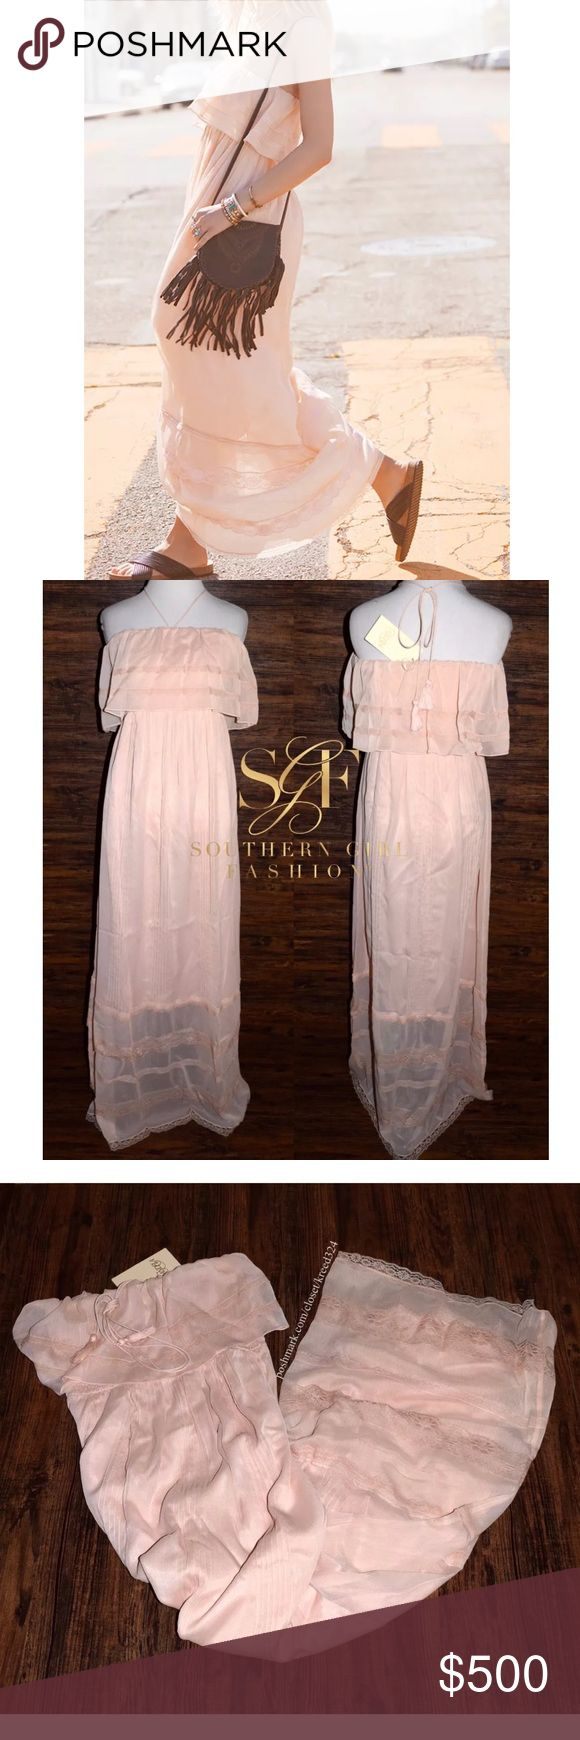 FREE PEOPLE Maxi Dress Draped Bohemian Long Gown Size Large. Brand New With Tags. $298 MSRP + Tax.  • Elegant blush color maxi dress featuring intricate floral lace raw scalloped trimming. • Optional halter-style neckline ties. • Banded, elastic upper body/bust portion allows for the perfect fit. • Self-lined with a midi dress. • By Candela for Free People. • Measurements provided in comments below.  {Southern Girl Fashion - Closet Policy}  ✔️ Same-Business-Day Shipping (10am CT). ✔️ Price…